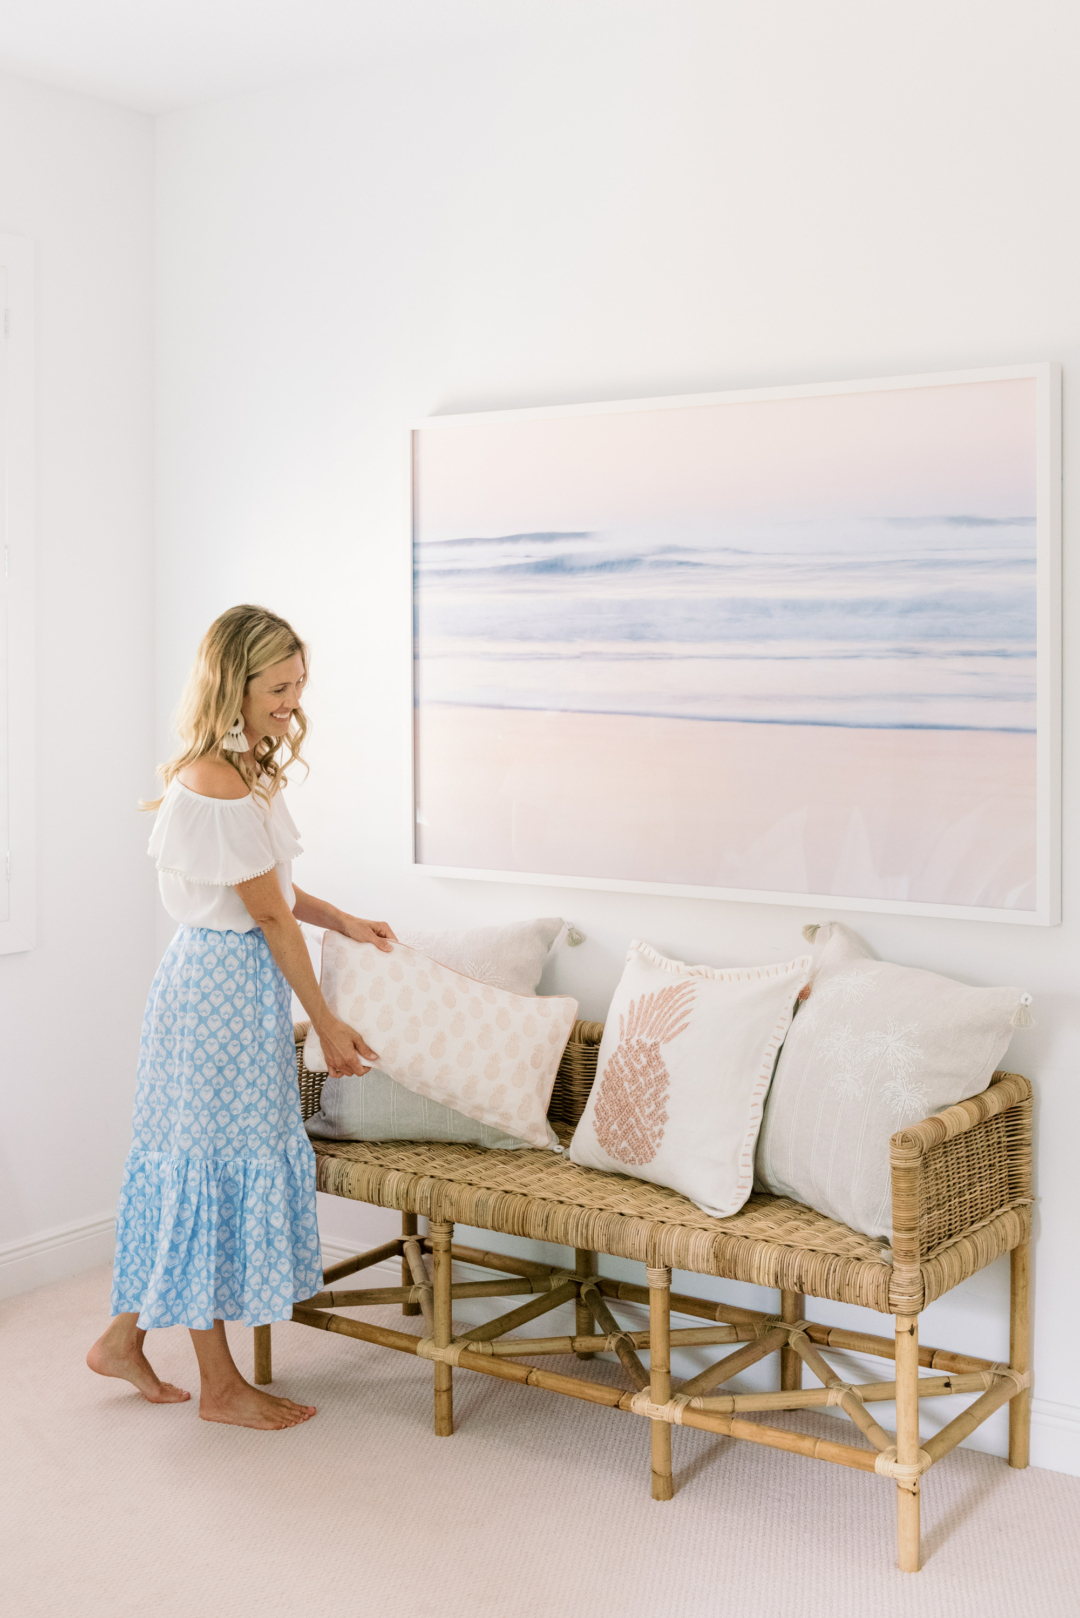 Home: Summer Update with Serena & Lily and Palm Beach Lately